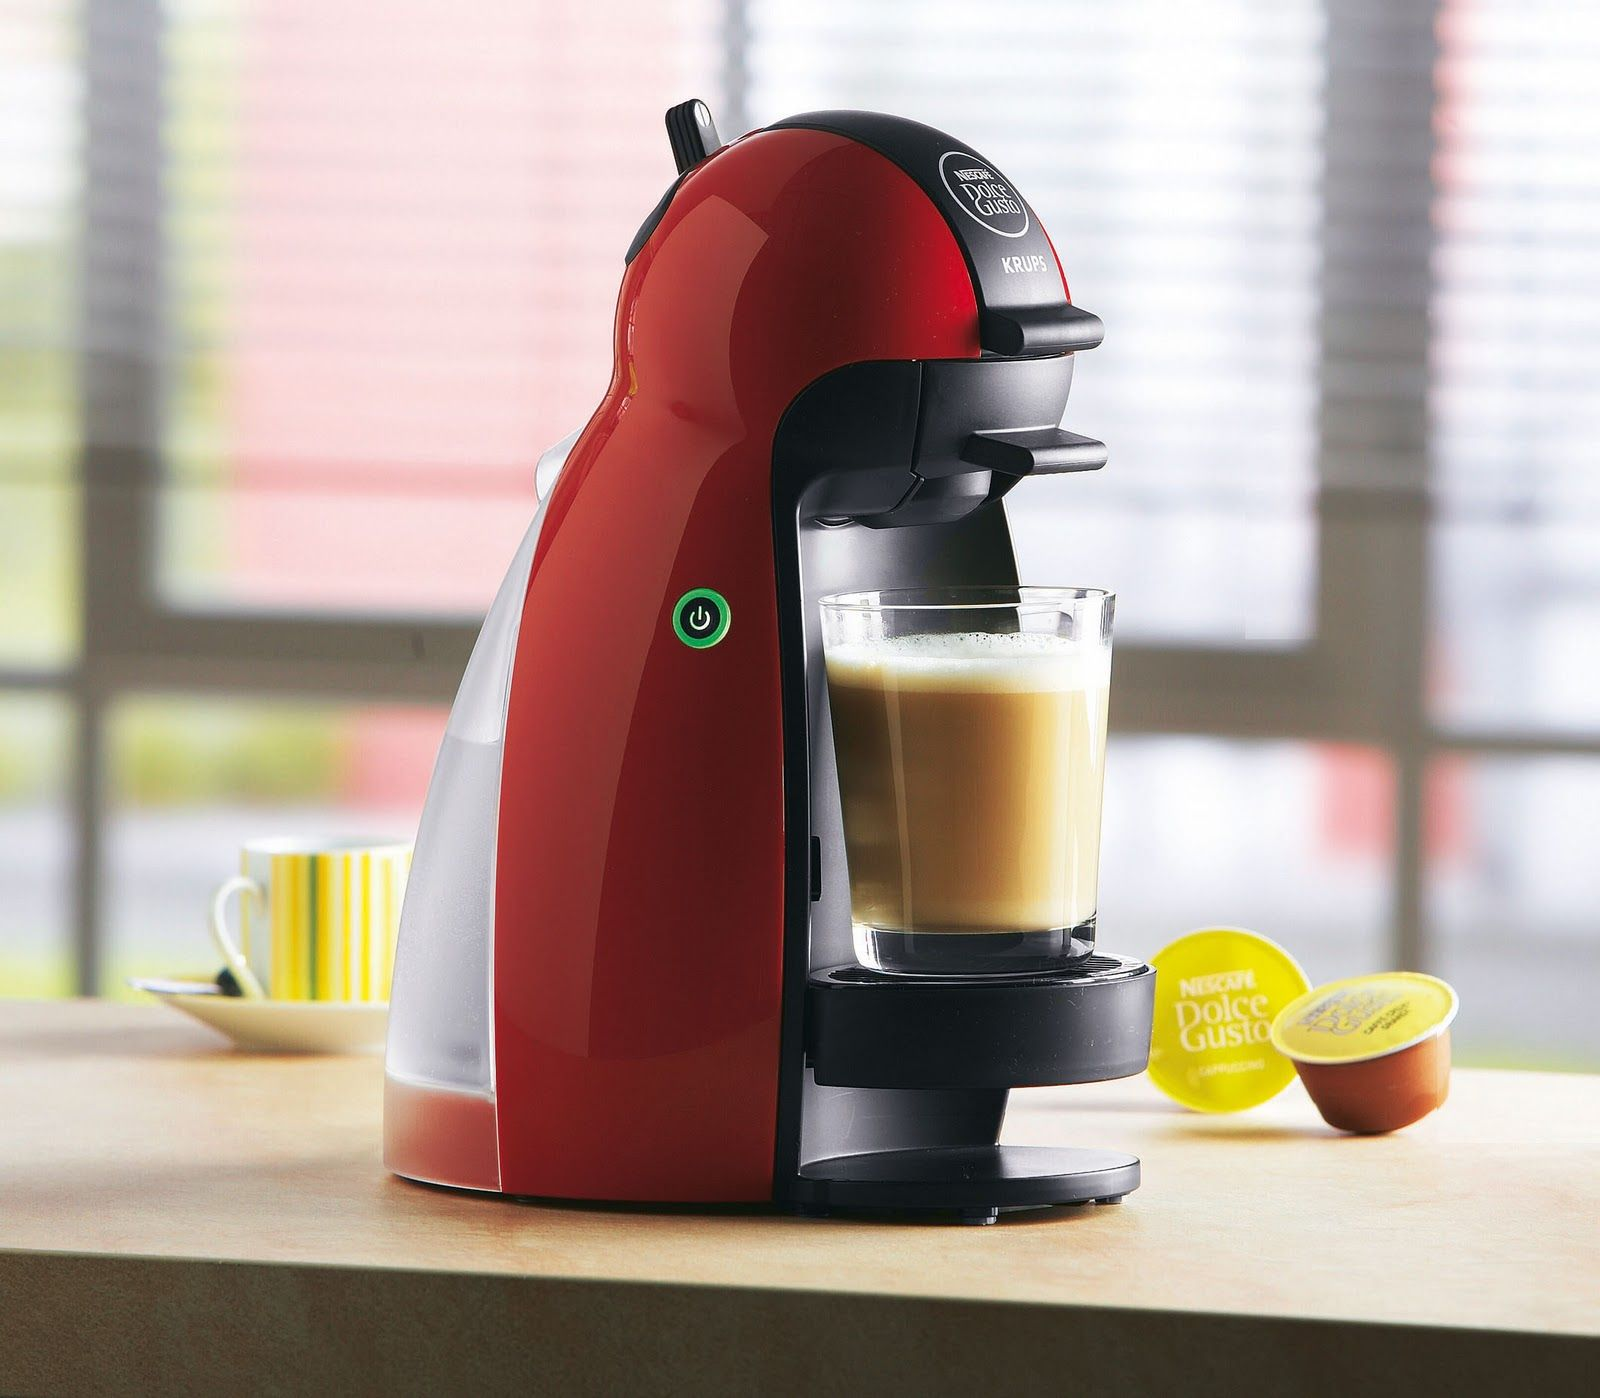 Save USD 20 on a Nescafe Dolce Gusto Coffee Machine Dolce gusto, Gusto and Nescafe